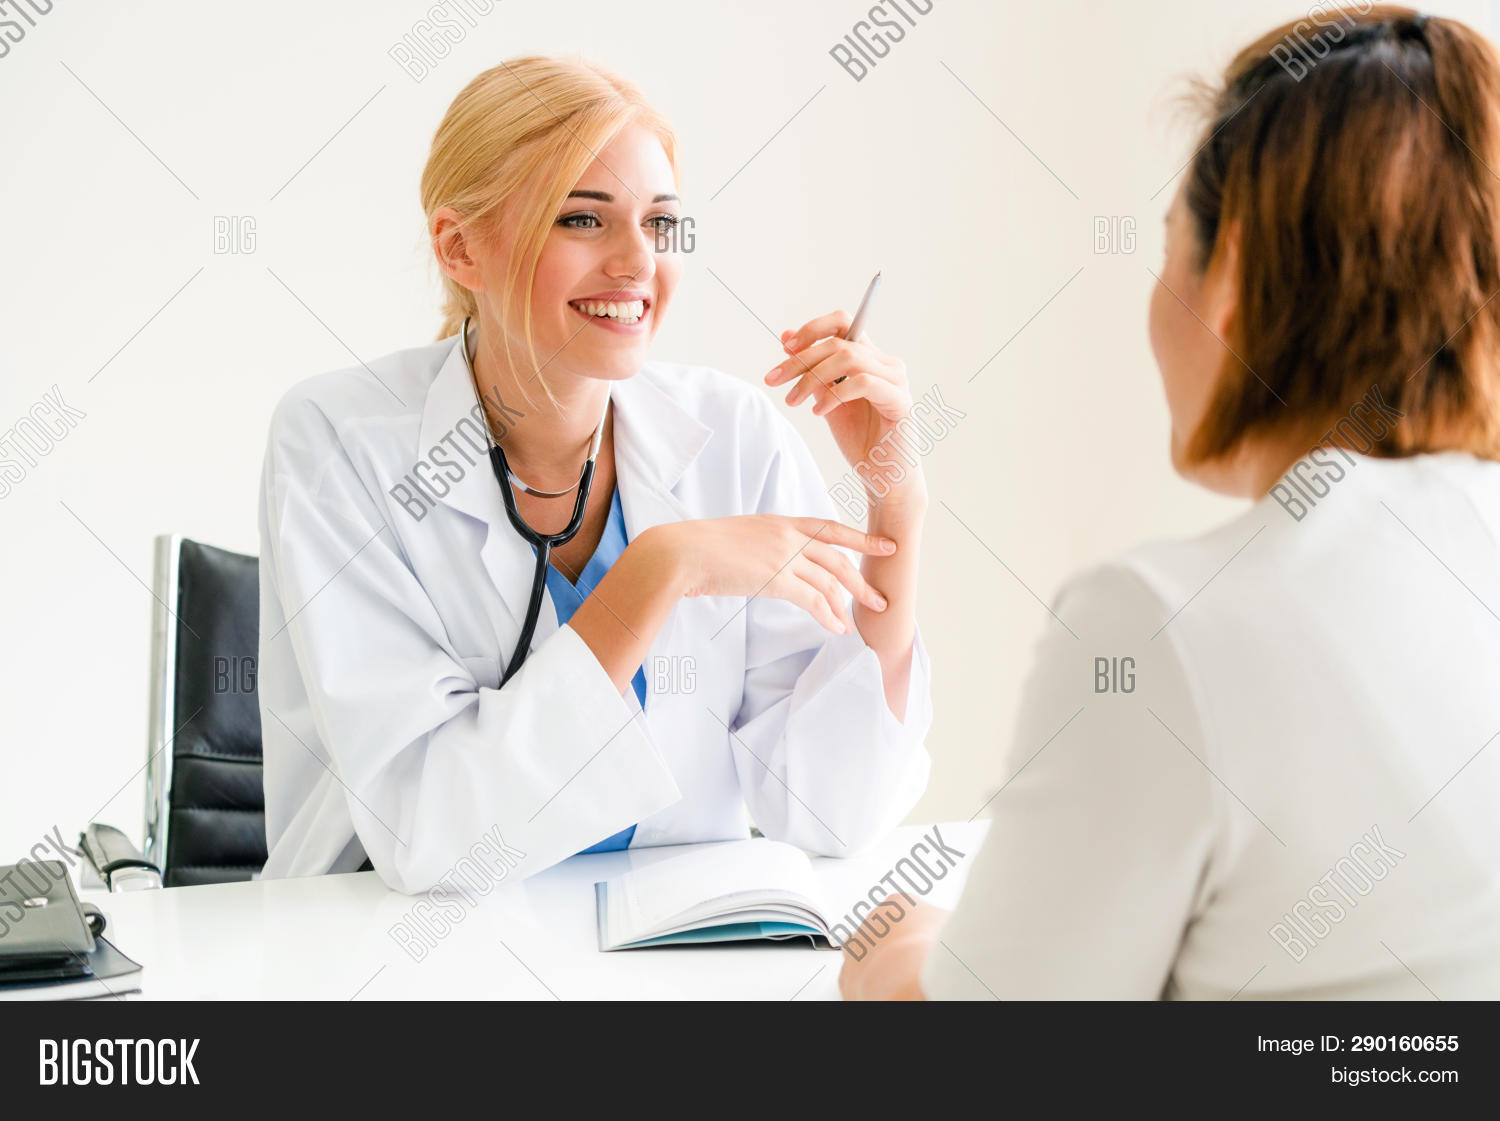 appointment,cancer,care,checking,clinic,computer,desk,doctor,doctoral,doctorate,doctored,examining,female,general,gp,happy,health,healthcare,healthcaring,hospital,hospitalization,hospitalizing,impatient,inpatient,male,man,mature,medical,old,outpatient,patient,patiently,premedical,senior,sick,smile,smiling,staff,stethoscope,talking,technology,treatment,visit,ward,women,worker,working,young